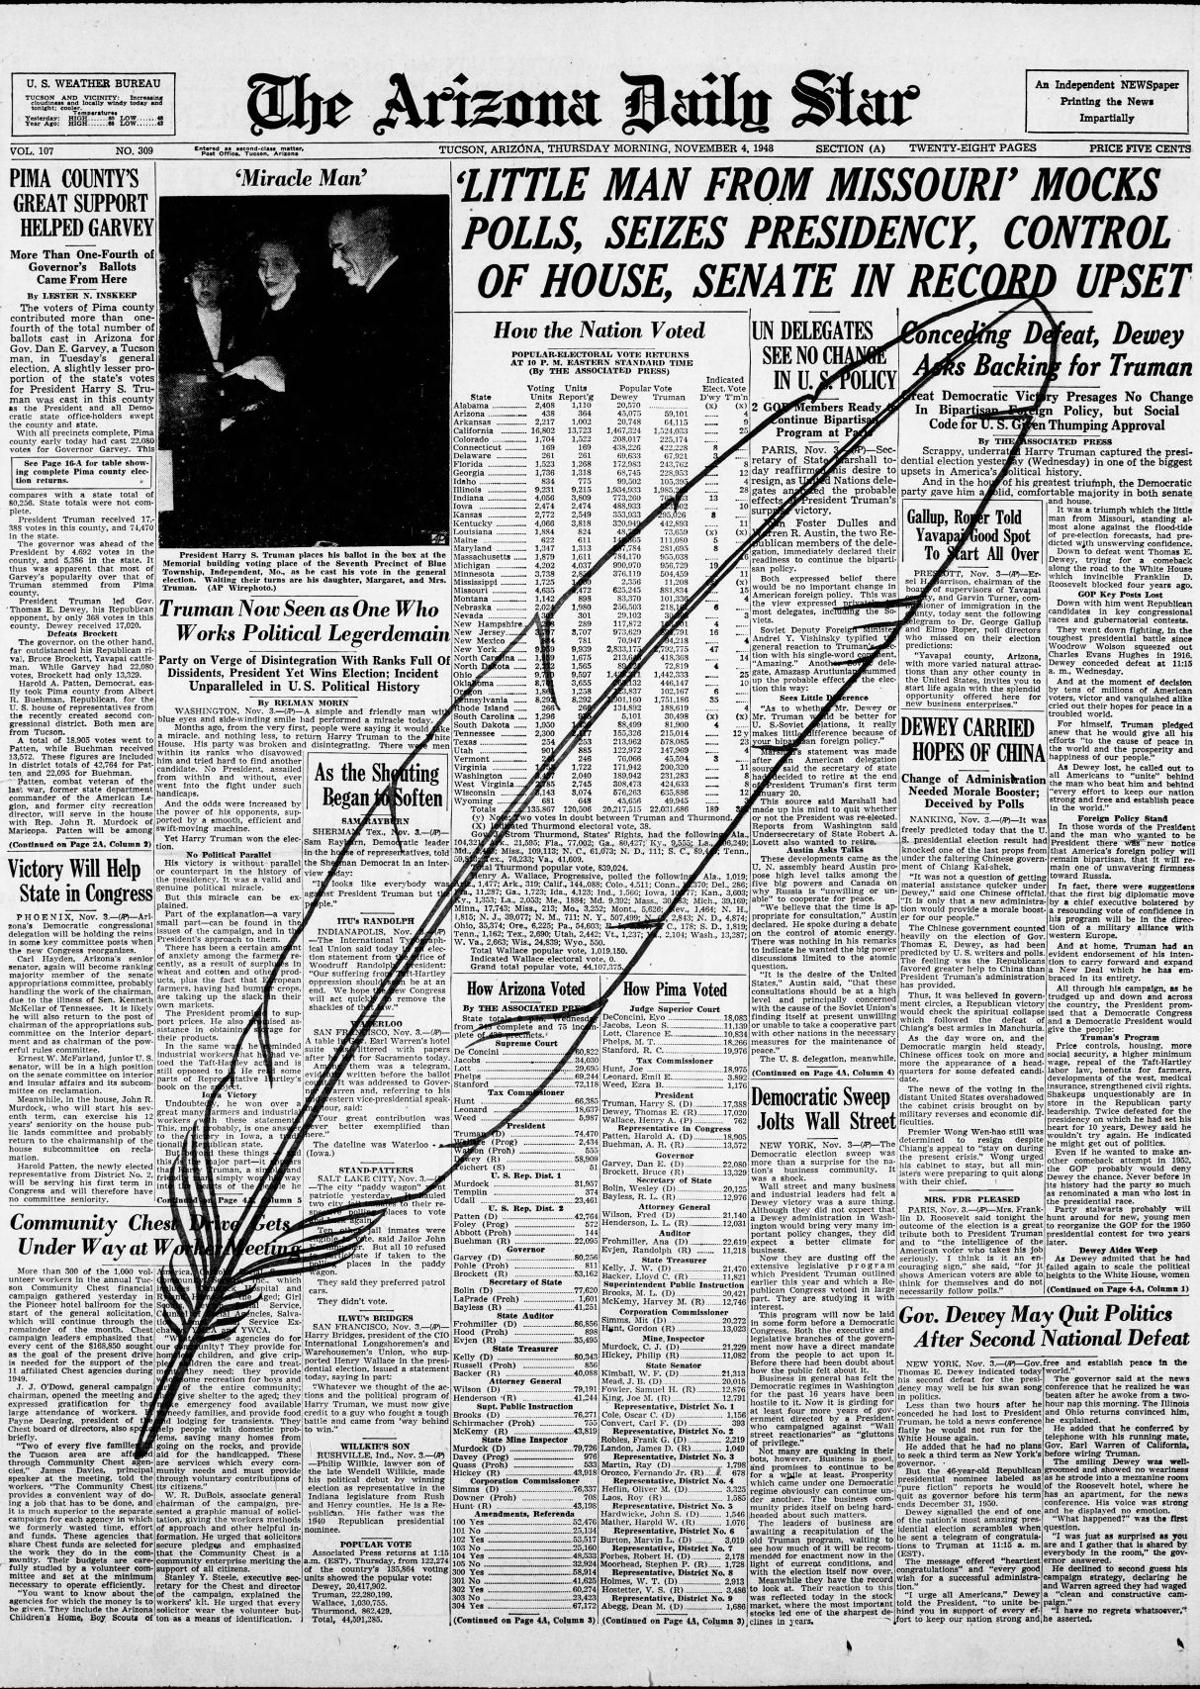 Nov. 4, 1948: Truman defeats Dewey and the Red Feather campaign